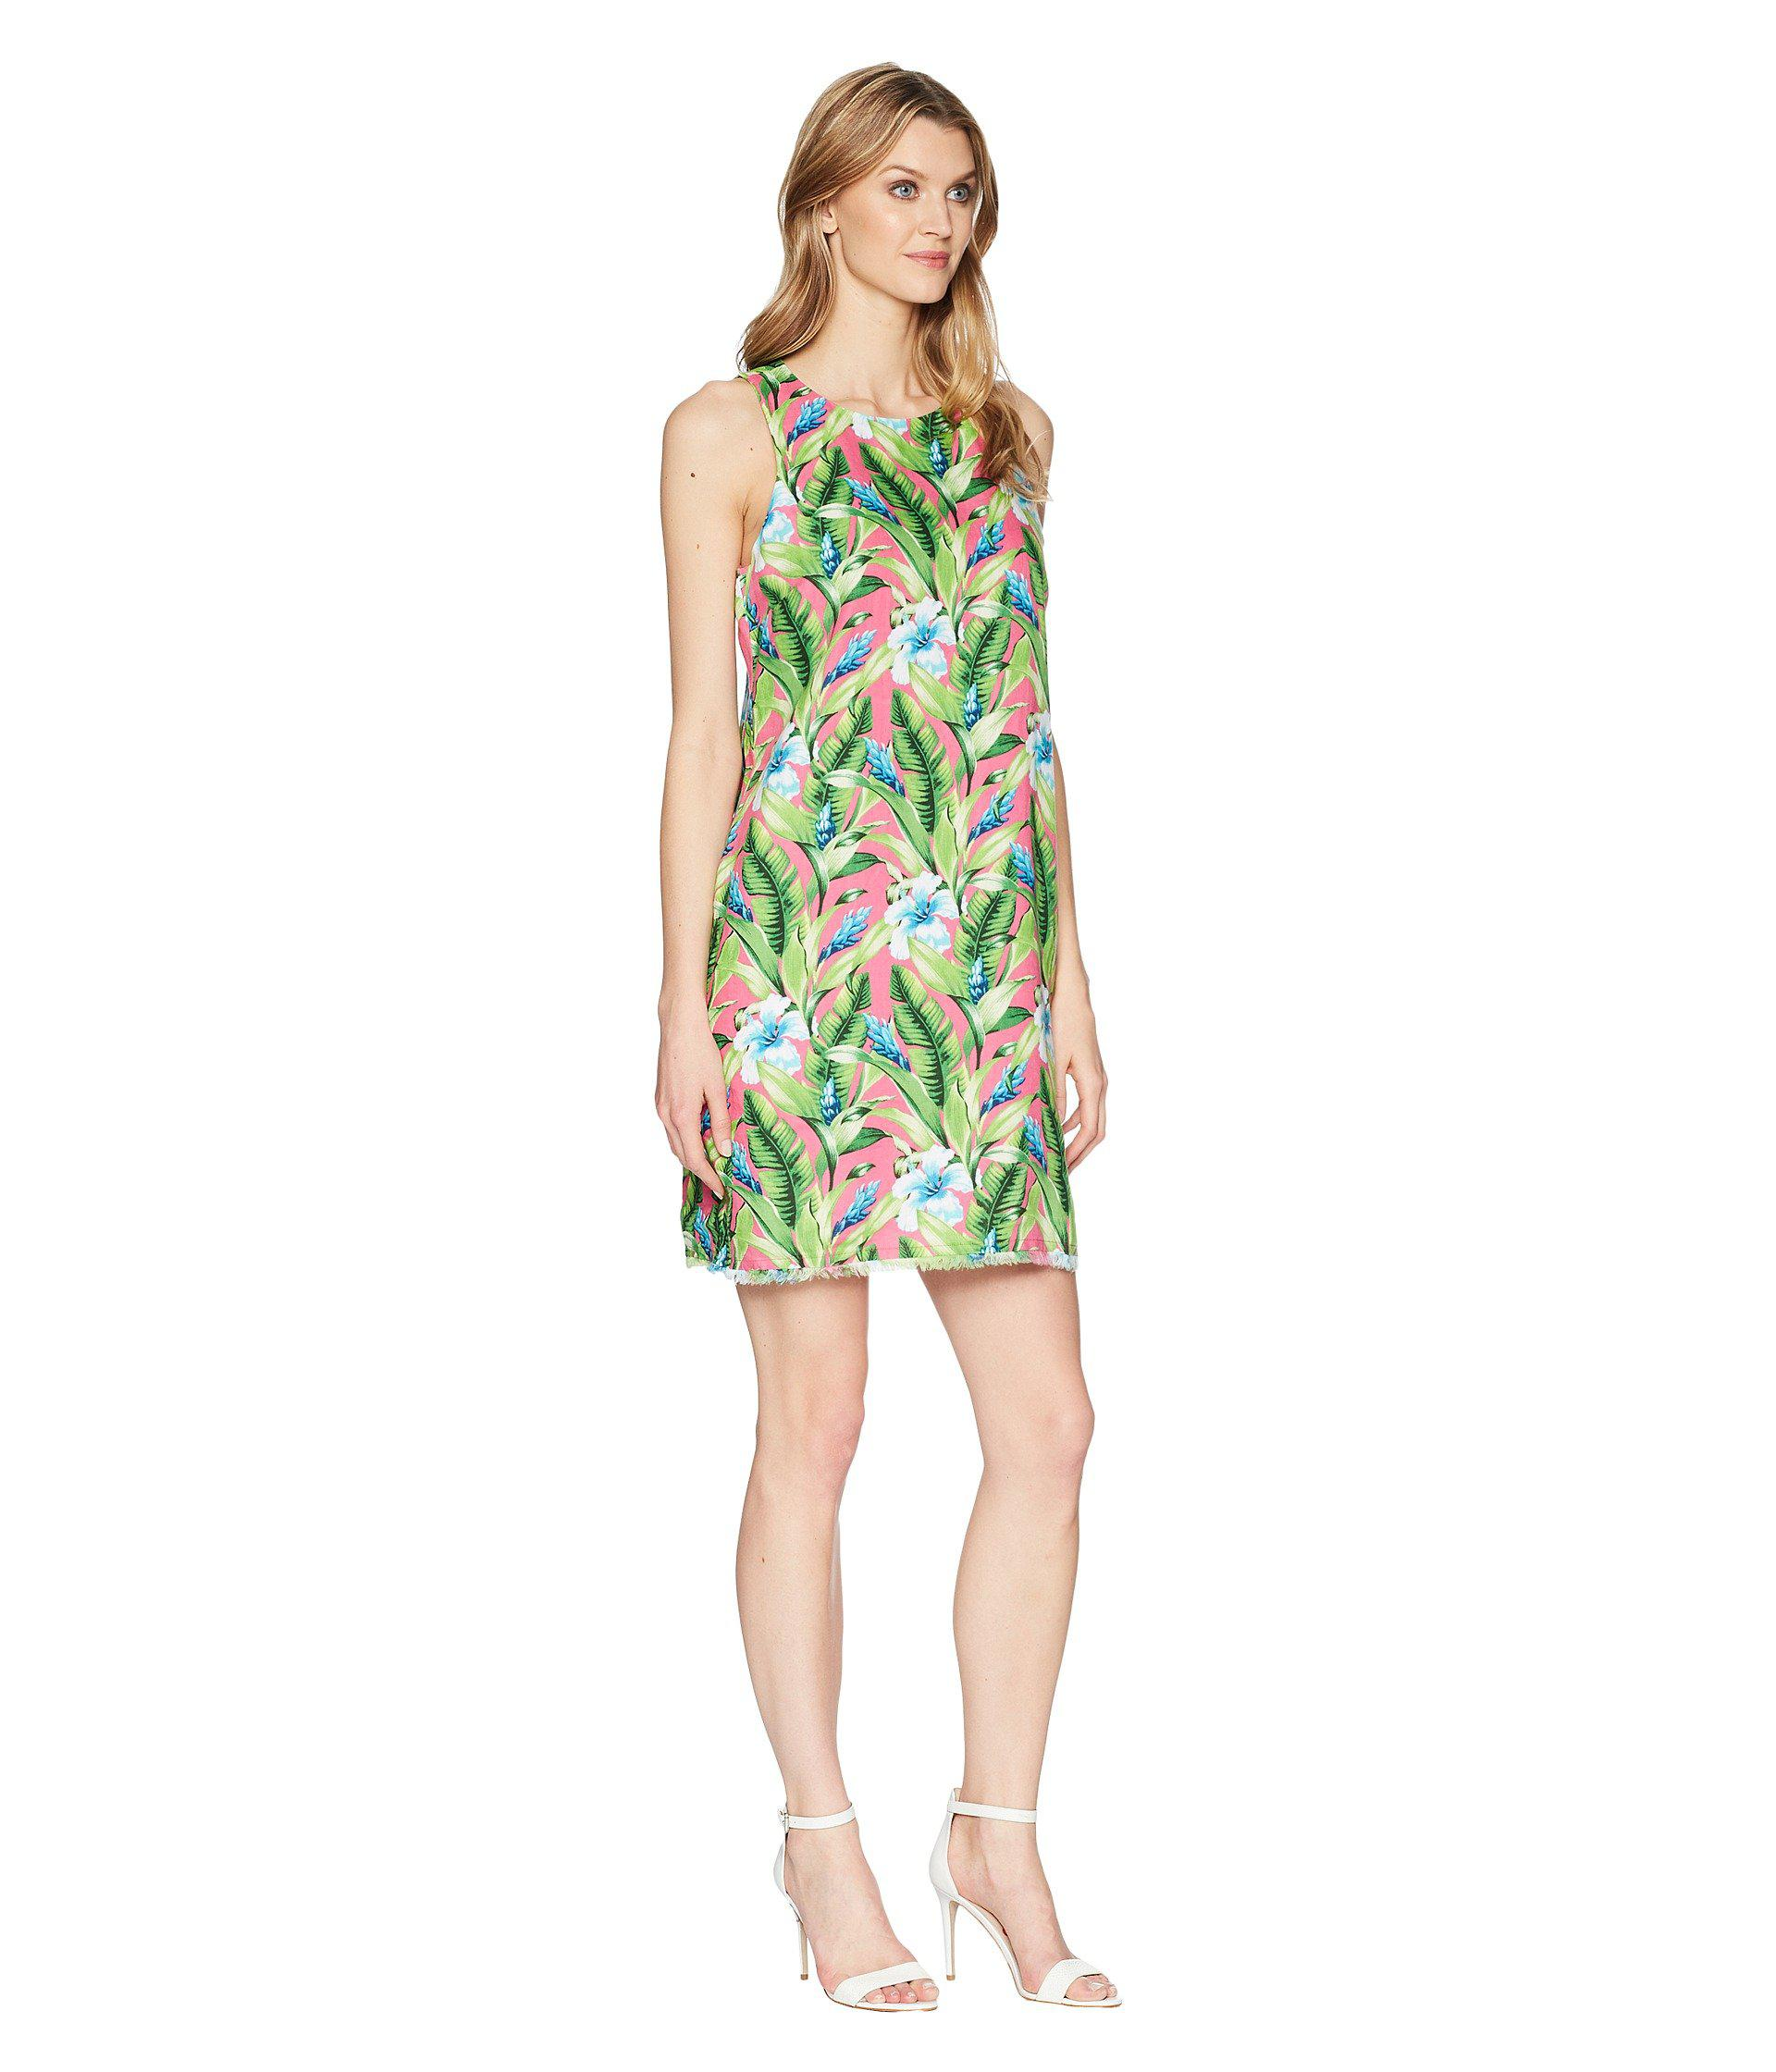 a0efd36bd51f Tommy Bahama Tulum Blooms Shift Dress in Green - Lyst